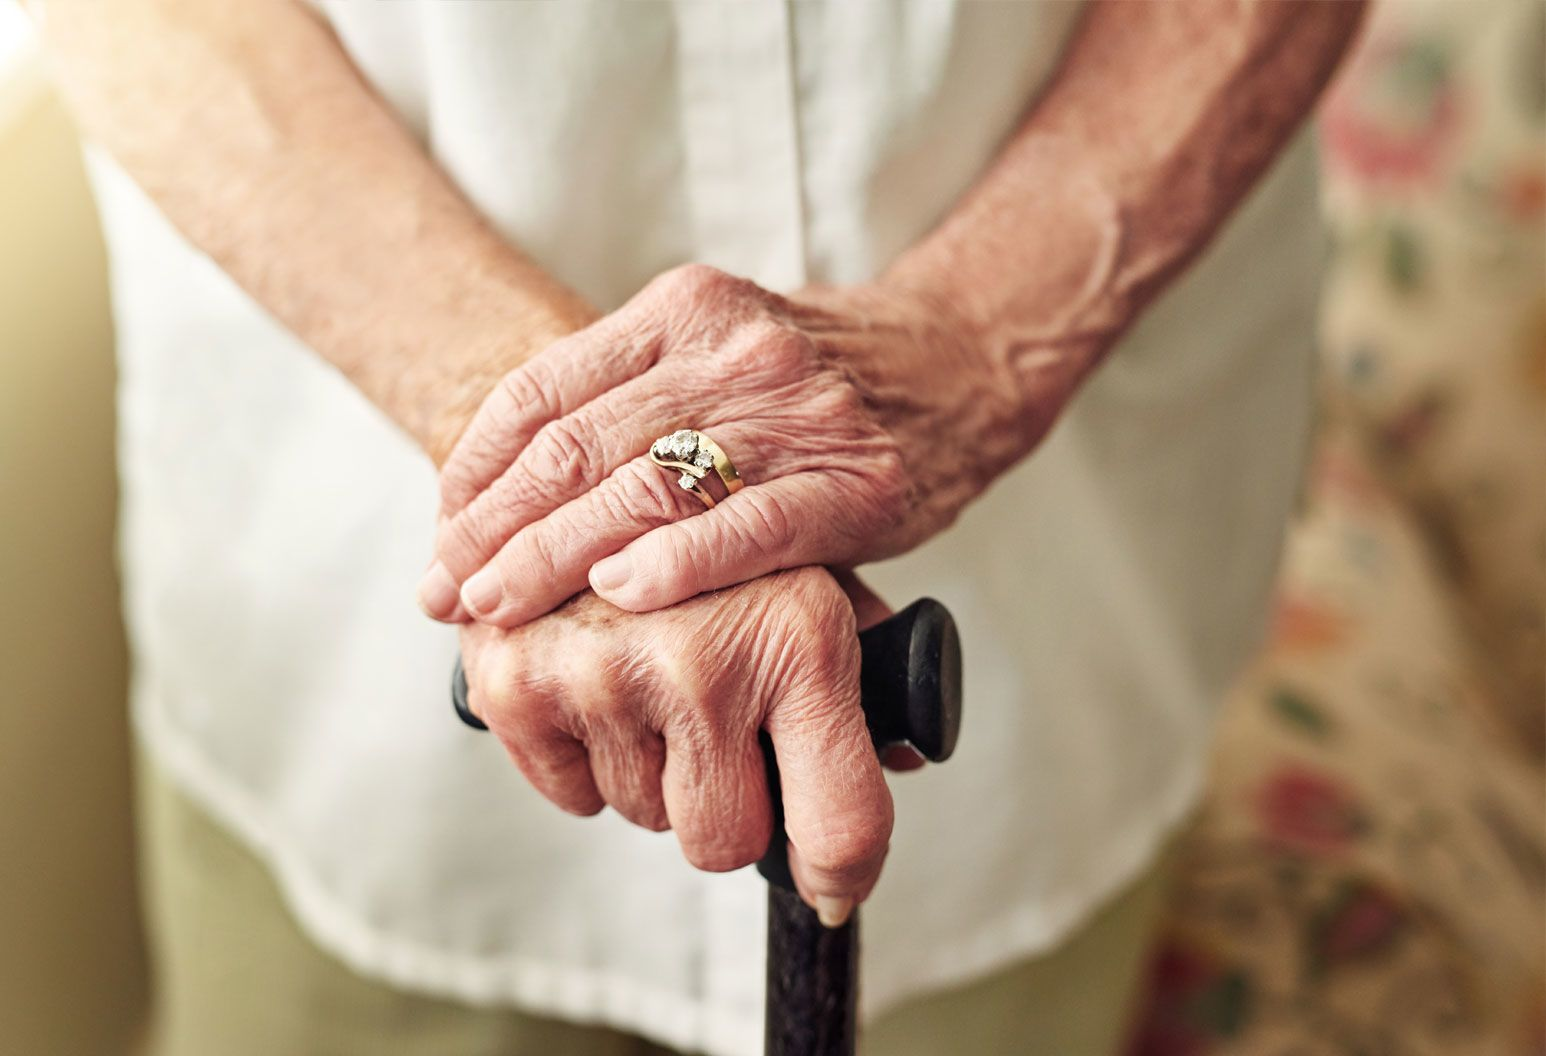 Close up of an elderly woman's hands holding a cane. She has a gold diamond ring on her finger. Her hands are in focus and the background is blurred. She's wearing a white button down shirt and tan pants.